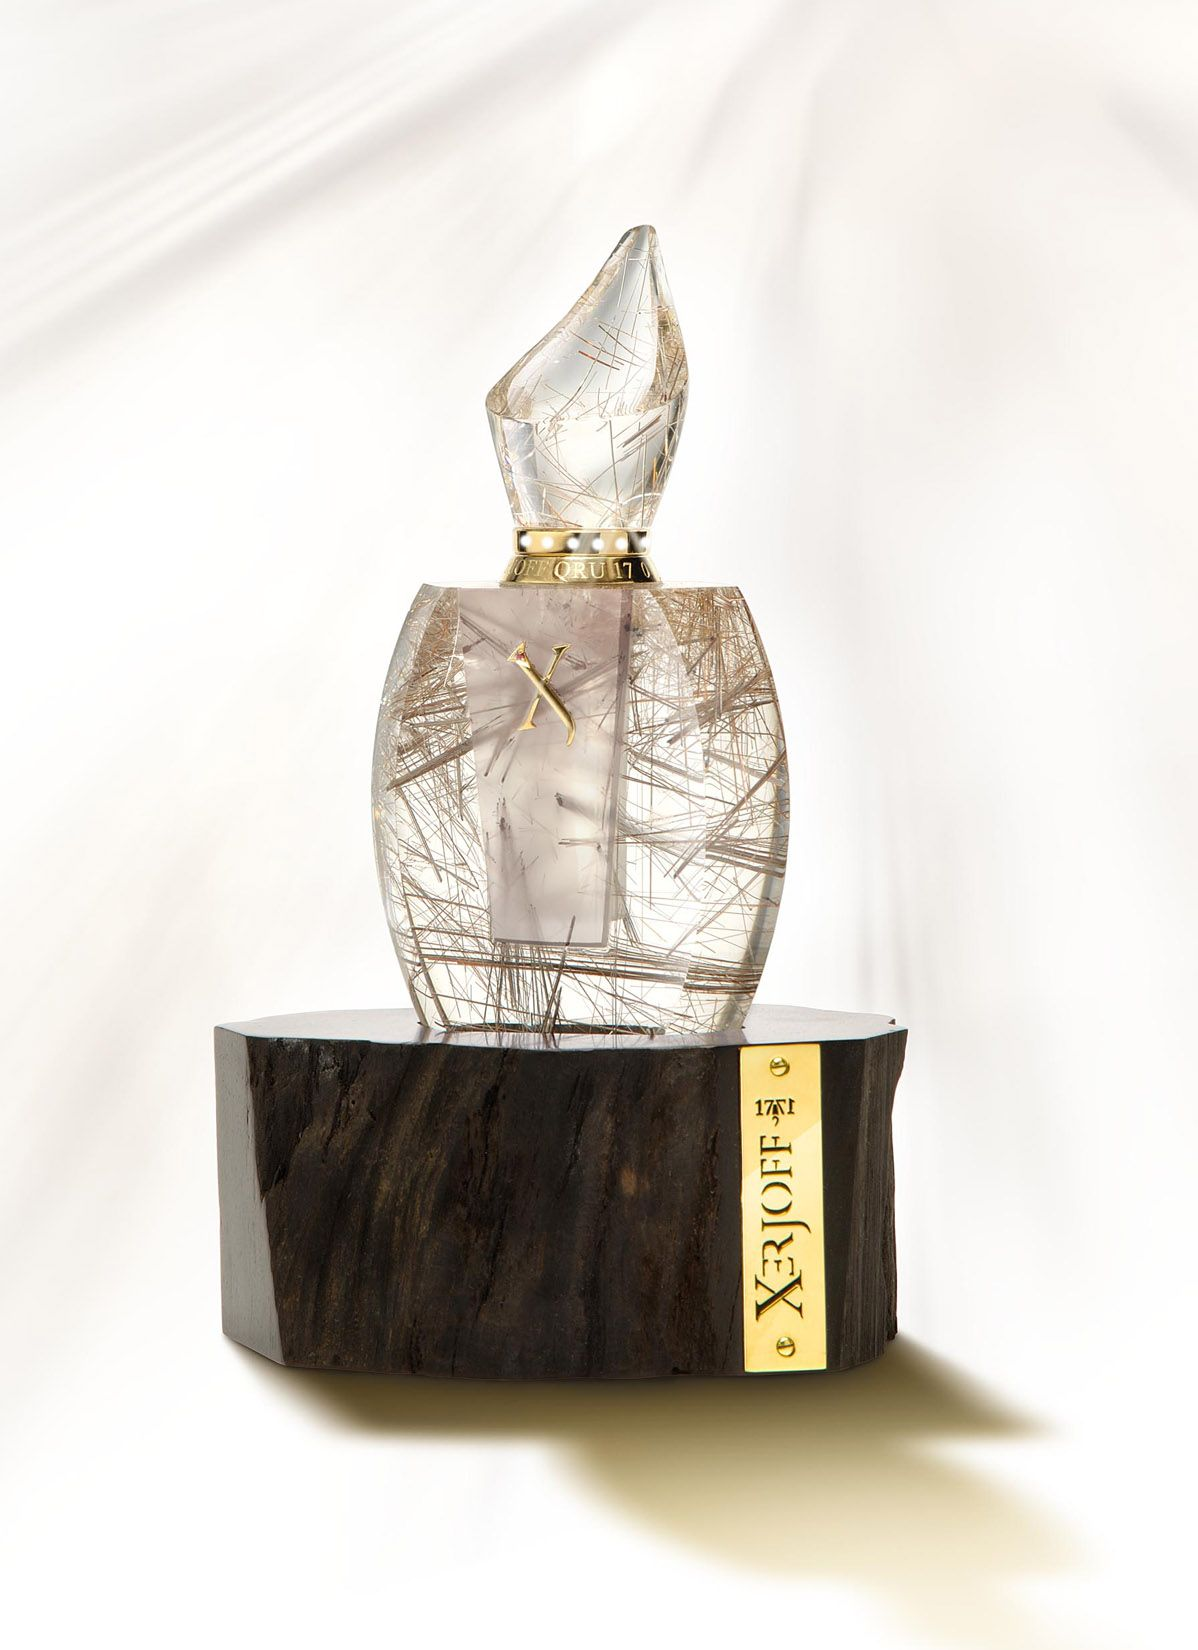 Image Detail for - the most expensive on the romanian market one cuartz collection bottle ...